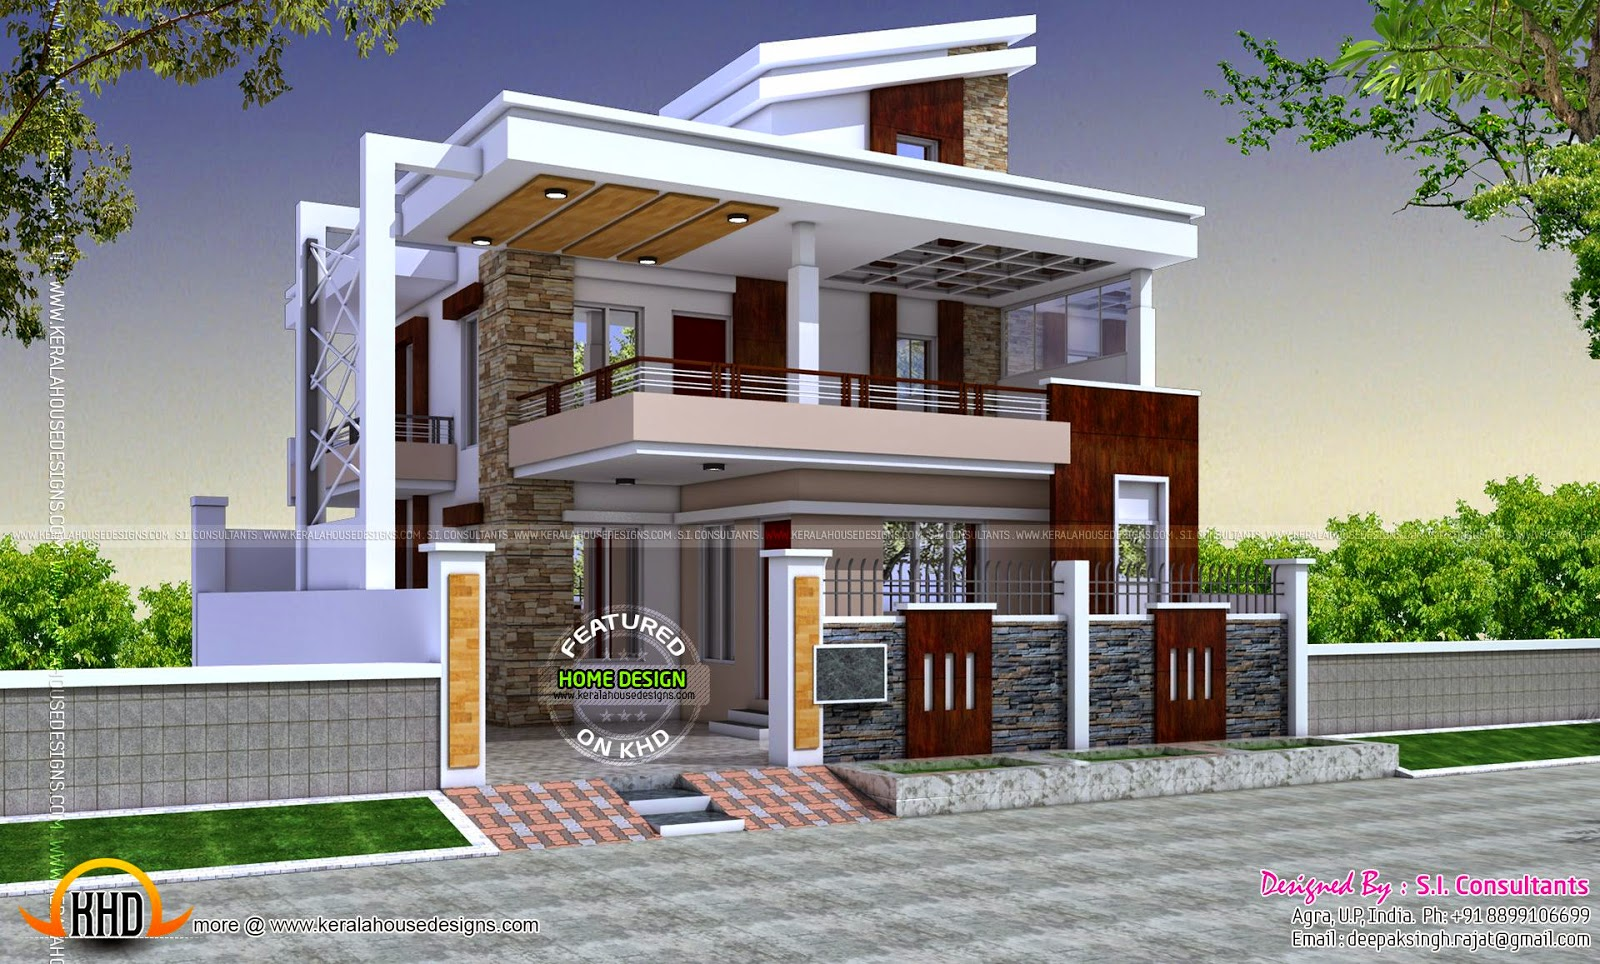 December 2014 kerala home design and floor plans Indian small house exterior design